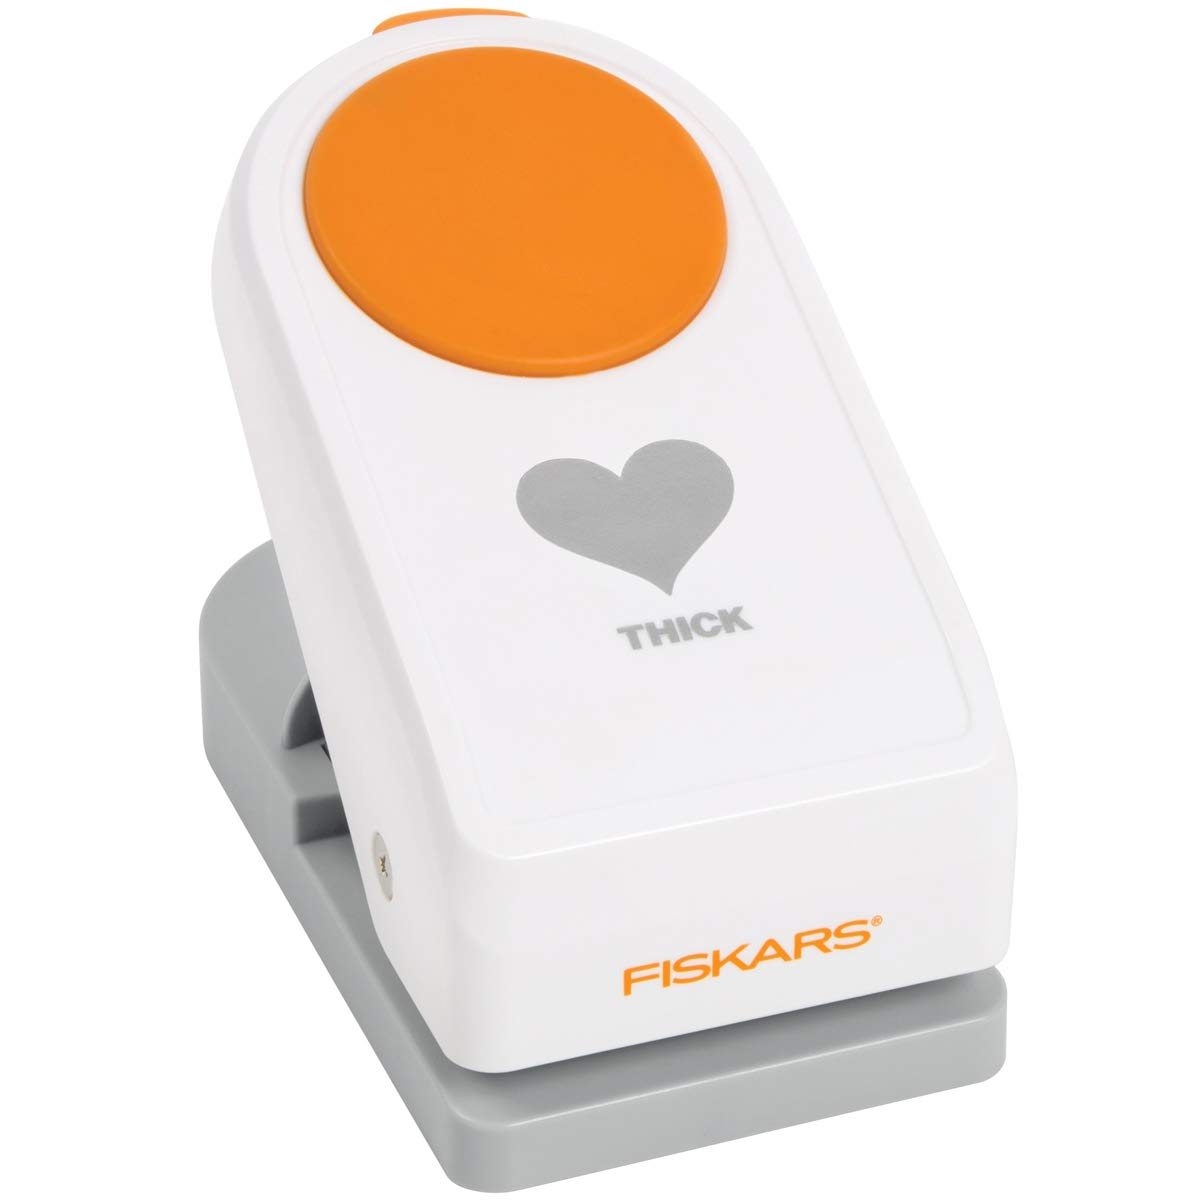 Circle Fiskars 2 Inch Thick Punch